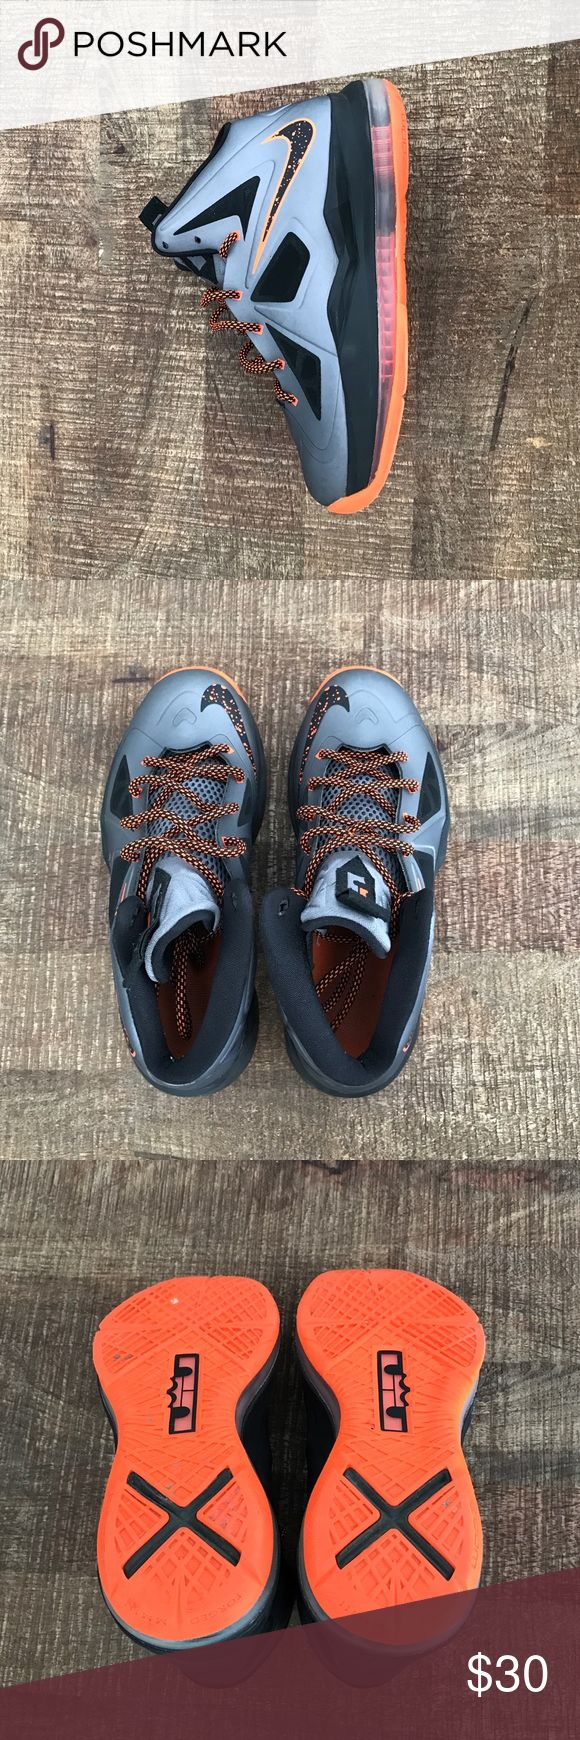 Lebron X Grade School These are only slightly worn, in great condition. They retail for $140. Charcoal/total orange black is the color, as listed on the box. Bundle with another shirt or pants for an added discount! Nike Shoes Sneakers